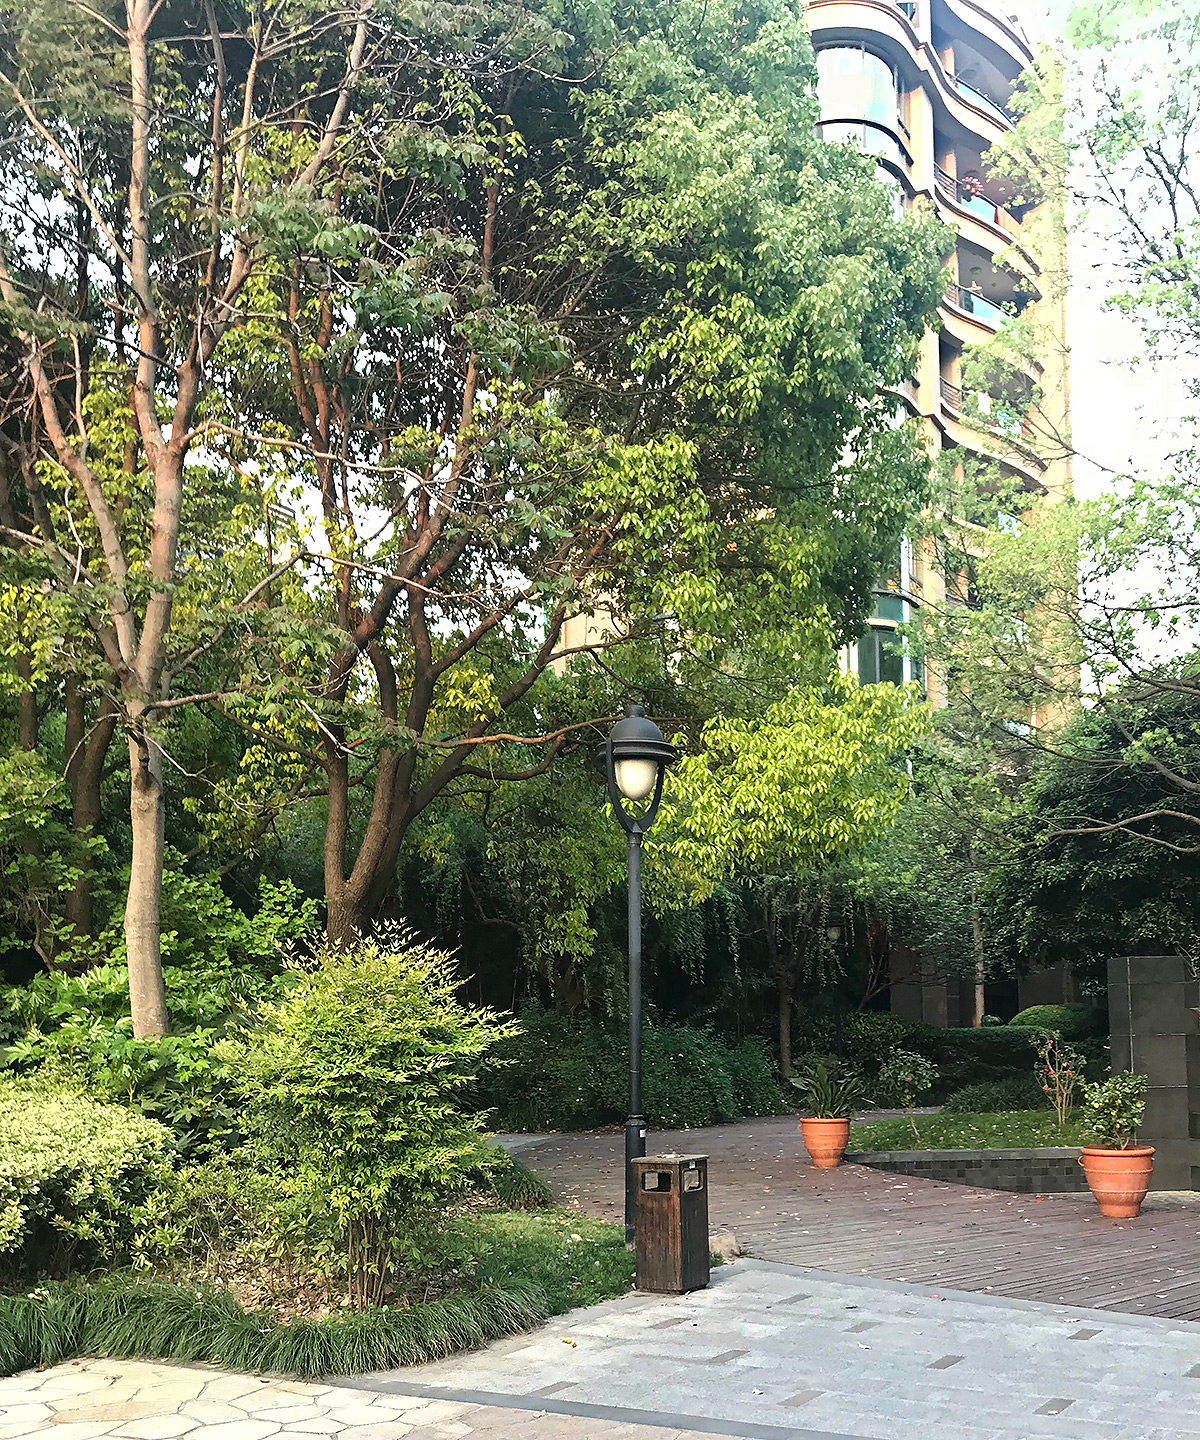 Urban wood providing habitat for migrating Asian Stubtail, Shanghai, April 2019. (Komatsu Yasuhiko)